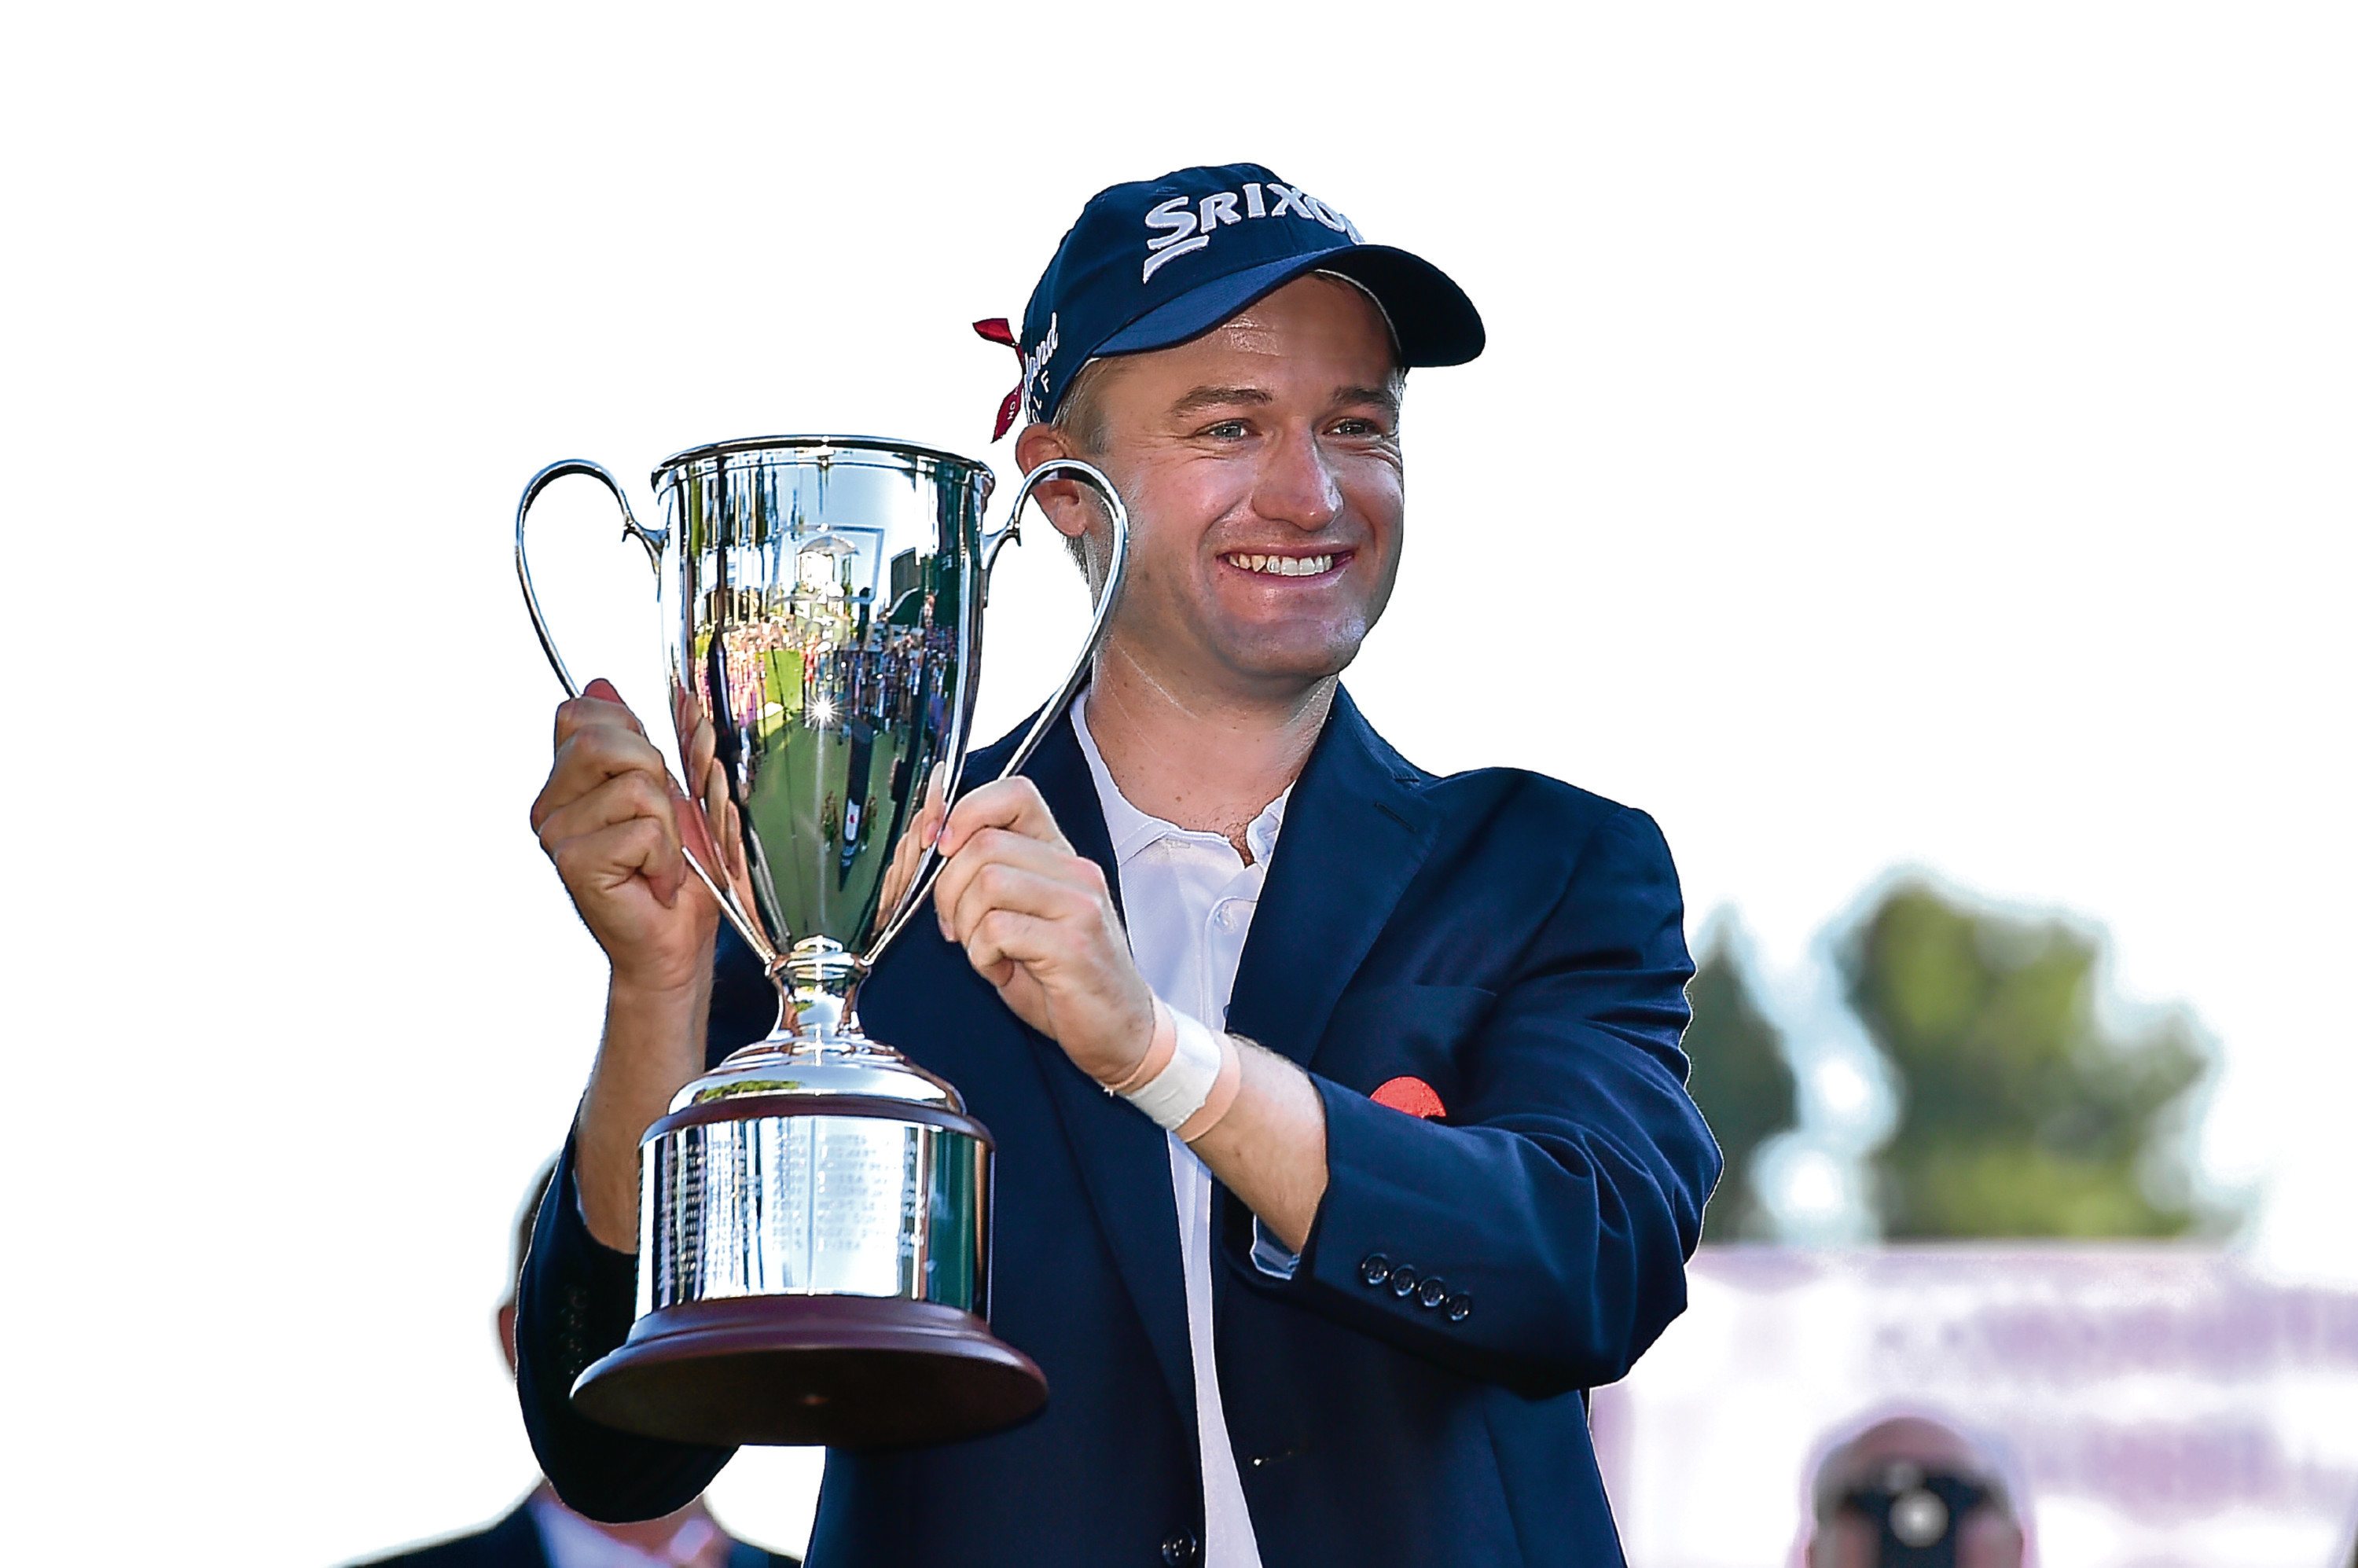 Russell Knox with the Travellers Championship trophy. The 30-year-old Scot now has a compelling argument to be a Ryder Cup wildcard.